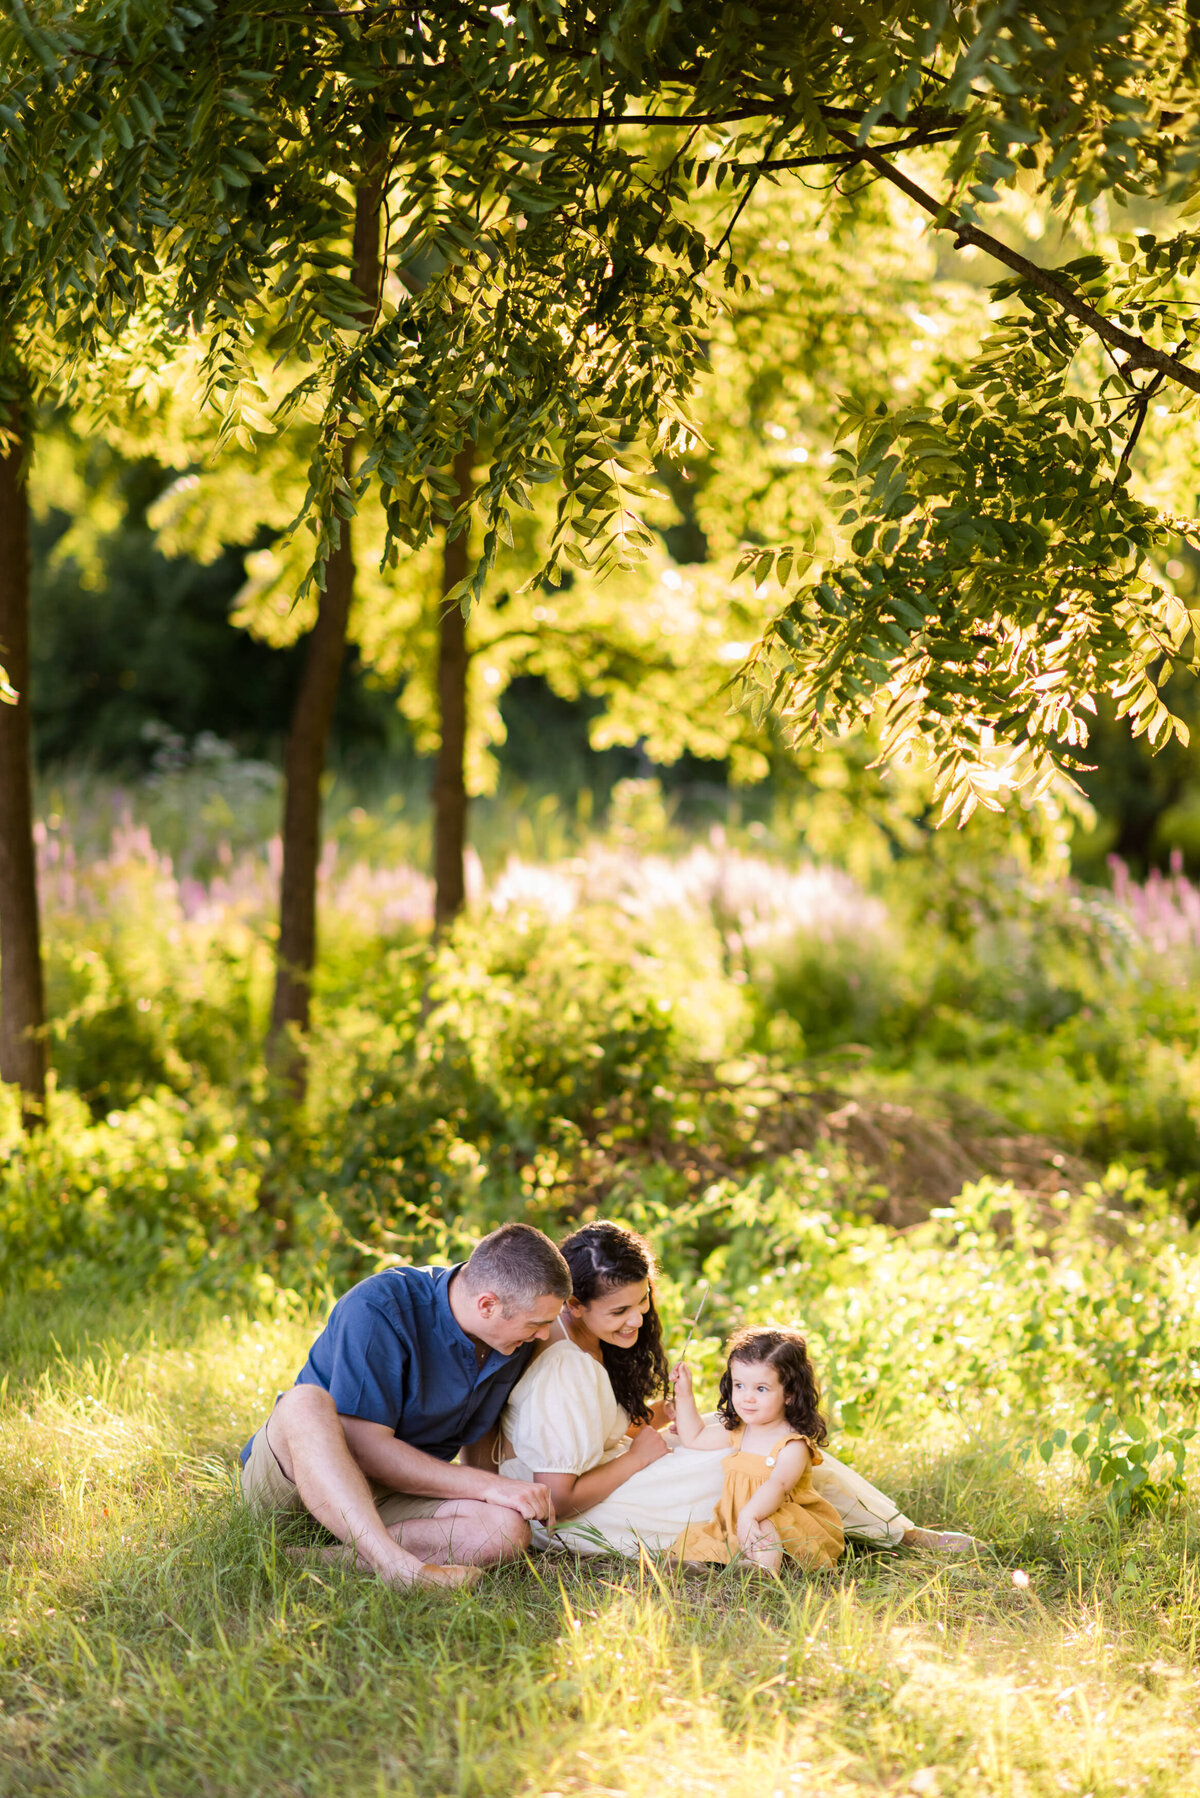 Boston-family-photographer-bella-wang-photography-Lifestyle-session-outdoor-wildflower-36